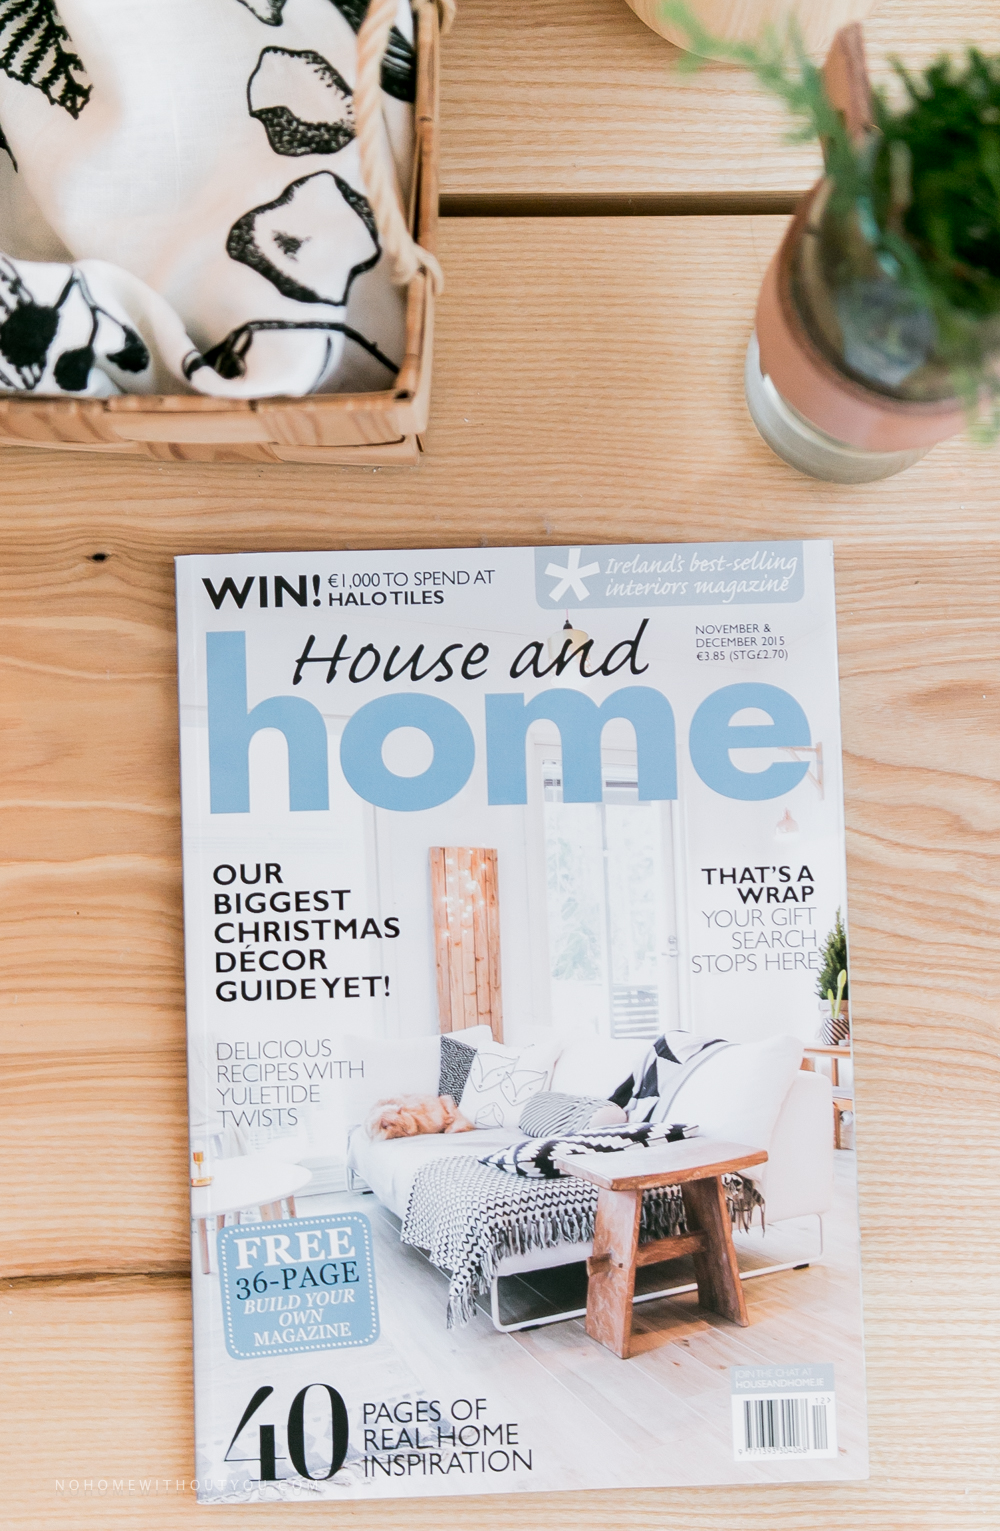 house and home cover  (1 of 8)